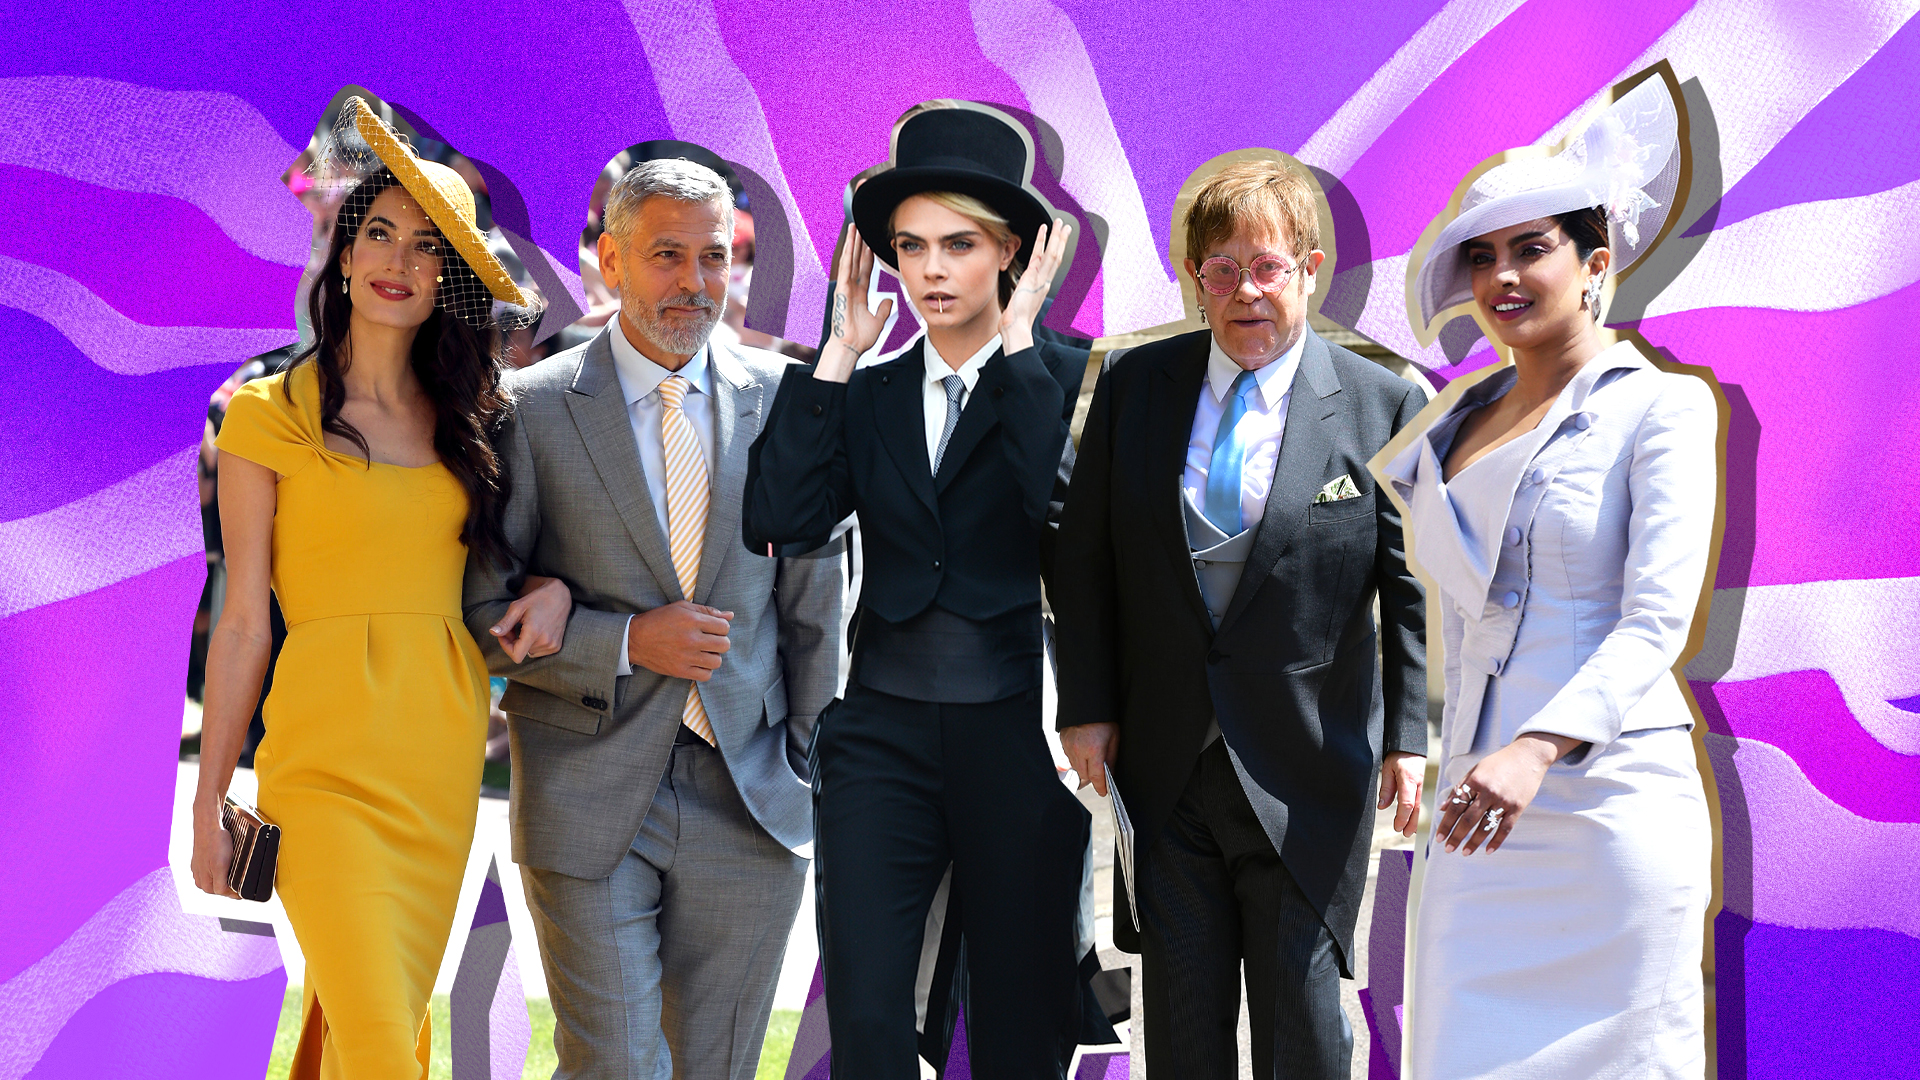 STYLECASTER | How Celebs Know the Royals